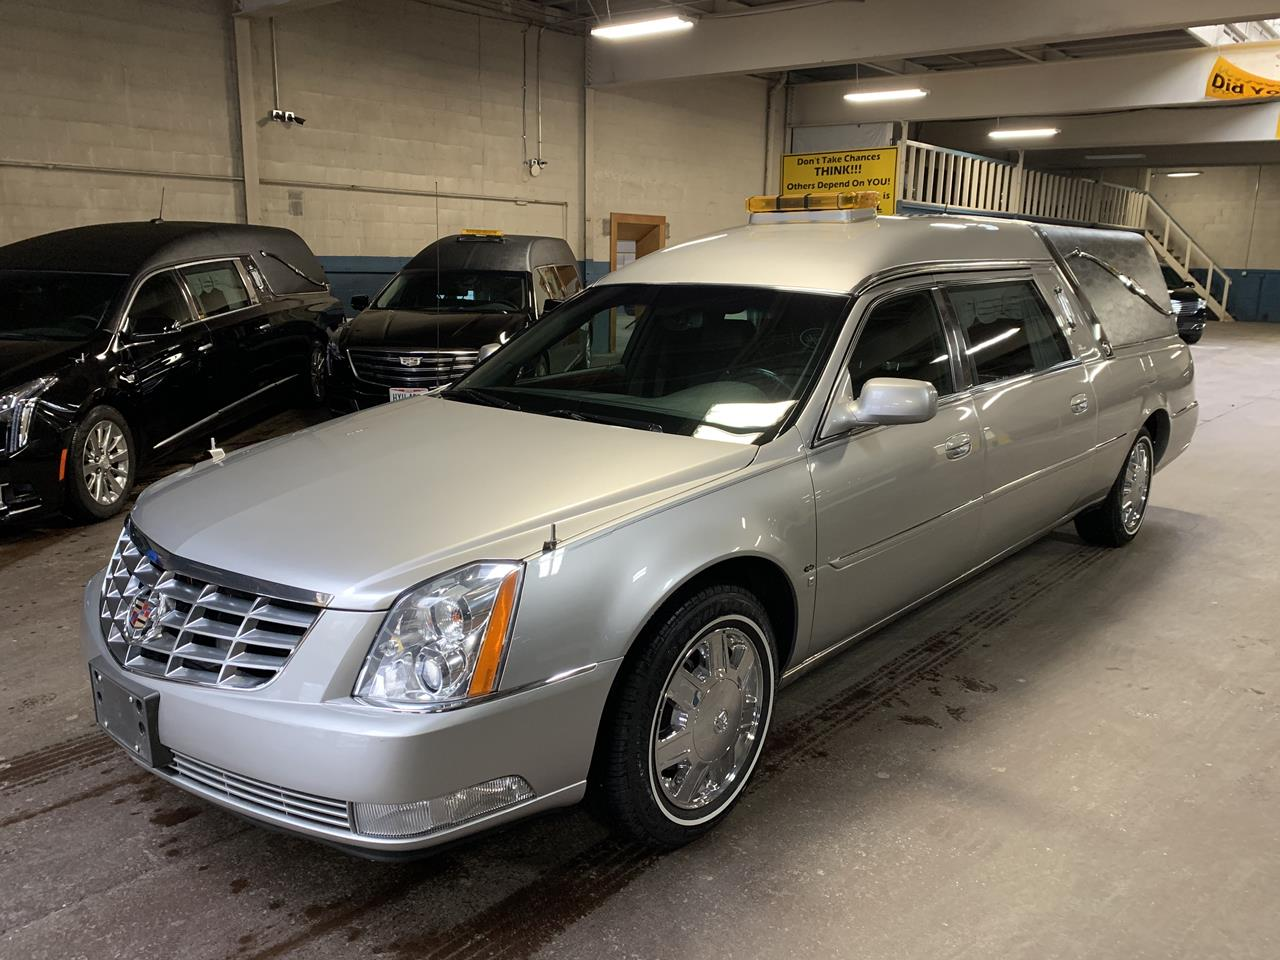 2006 Cadillac Eagle Kingsley Hearse